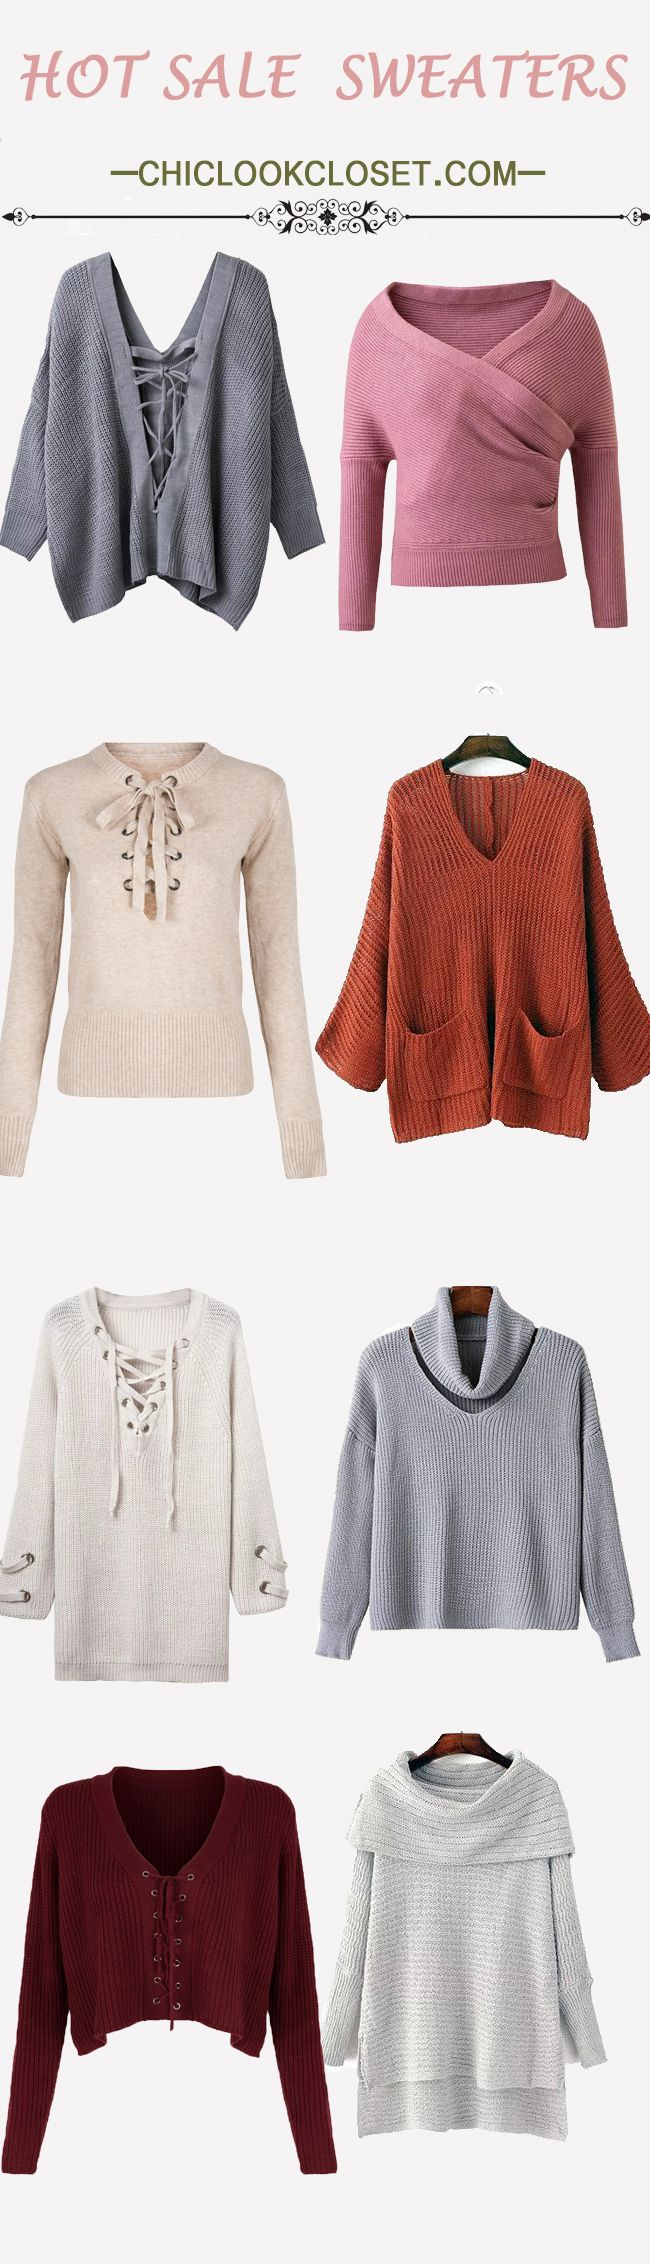 Sweaters are essential pieces in fall. It should not be absent in everyone's wardrobe, even man's. Chiclookcloset always is committed to provide the most popular fall style sweaters to you all.